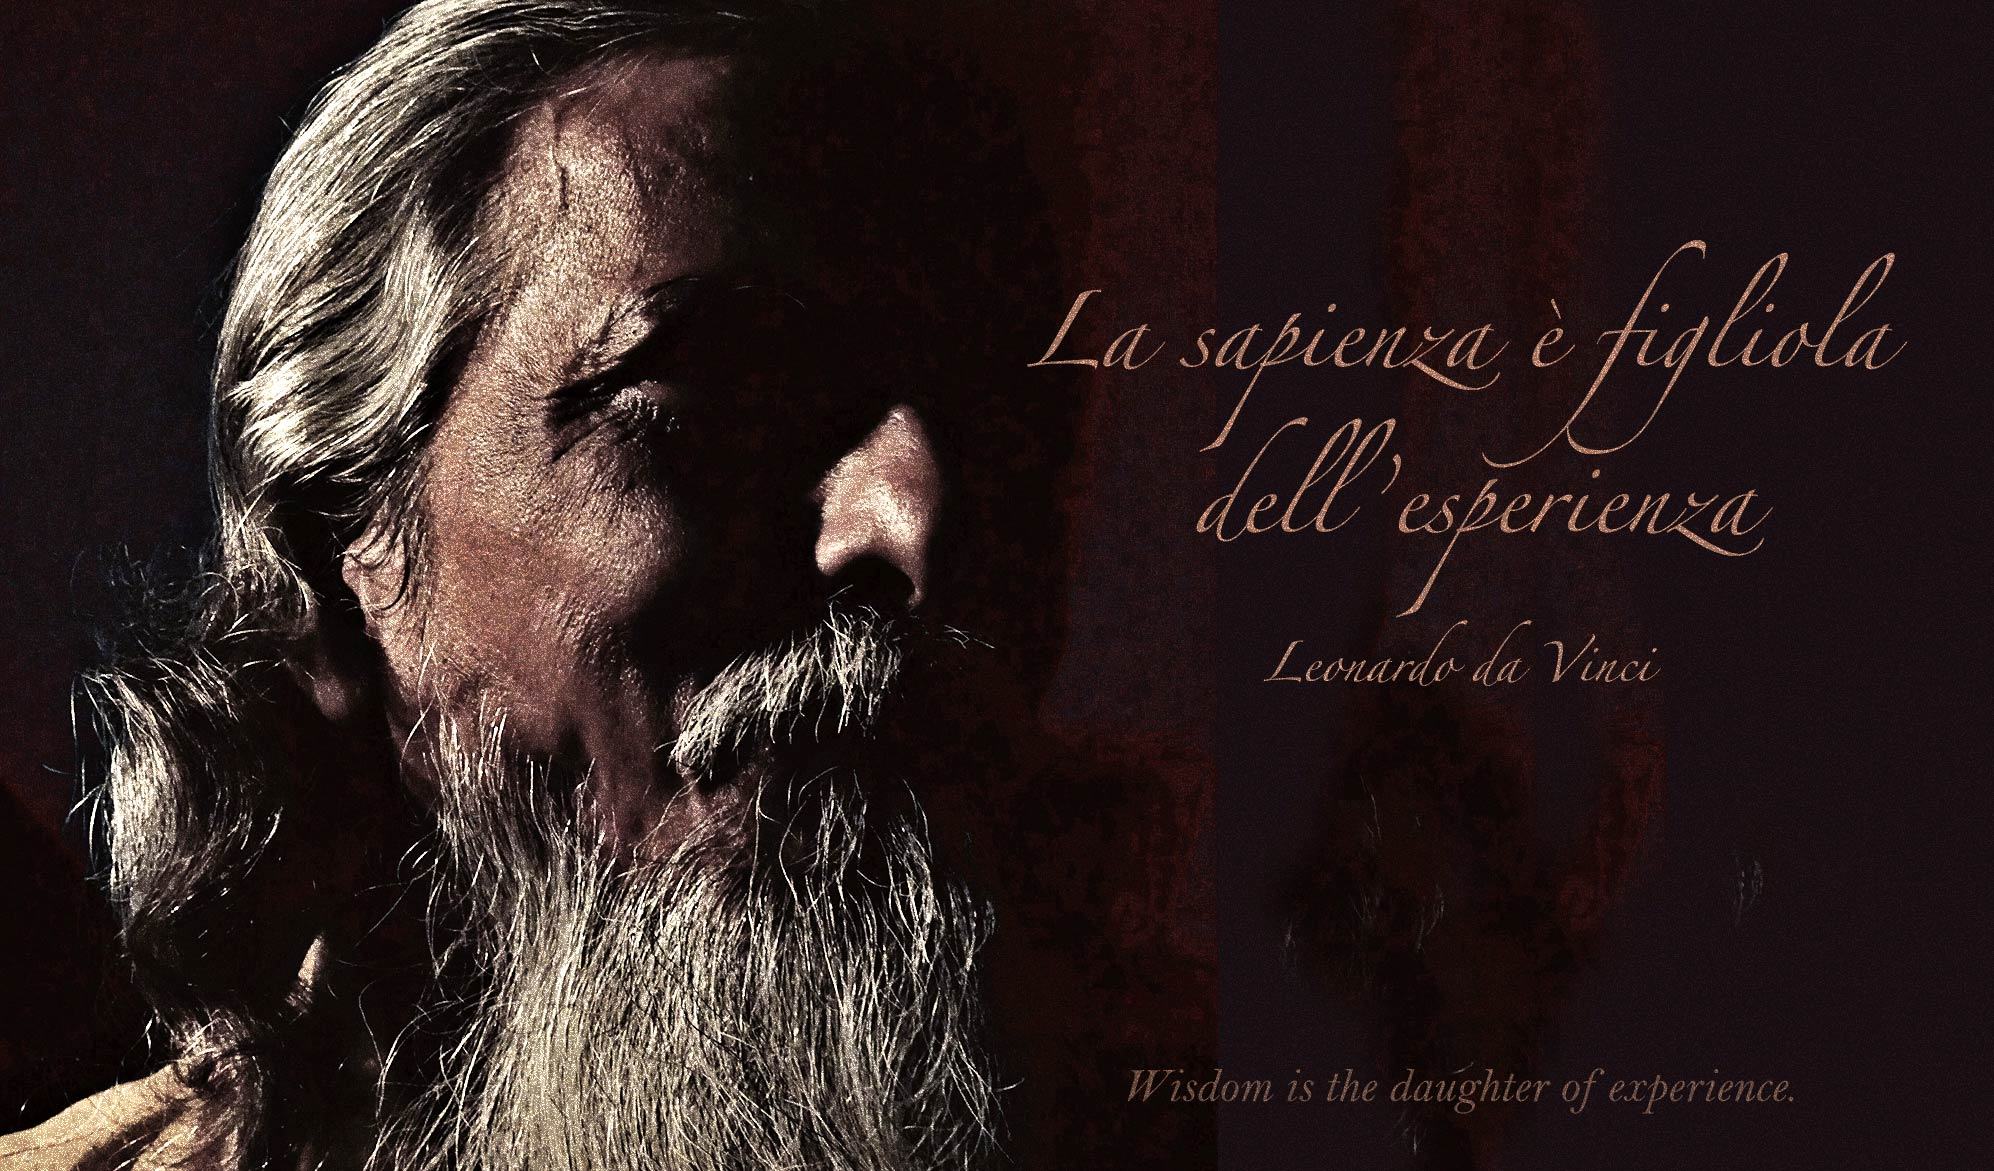 daily inspirational quote image:close up on the face of an older, bearded man, almost completely swallowed by shadows